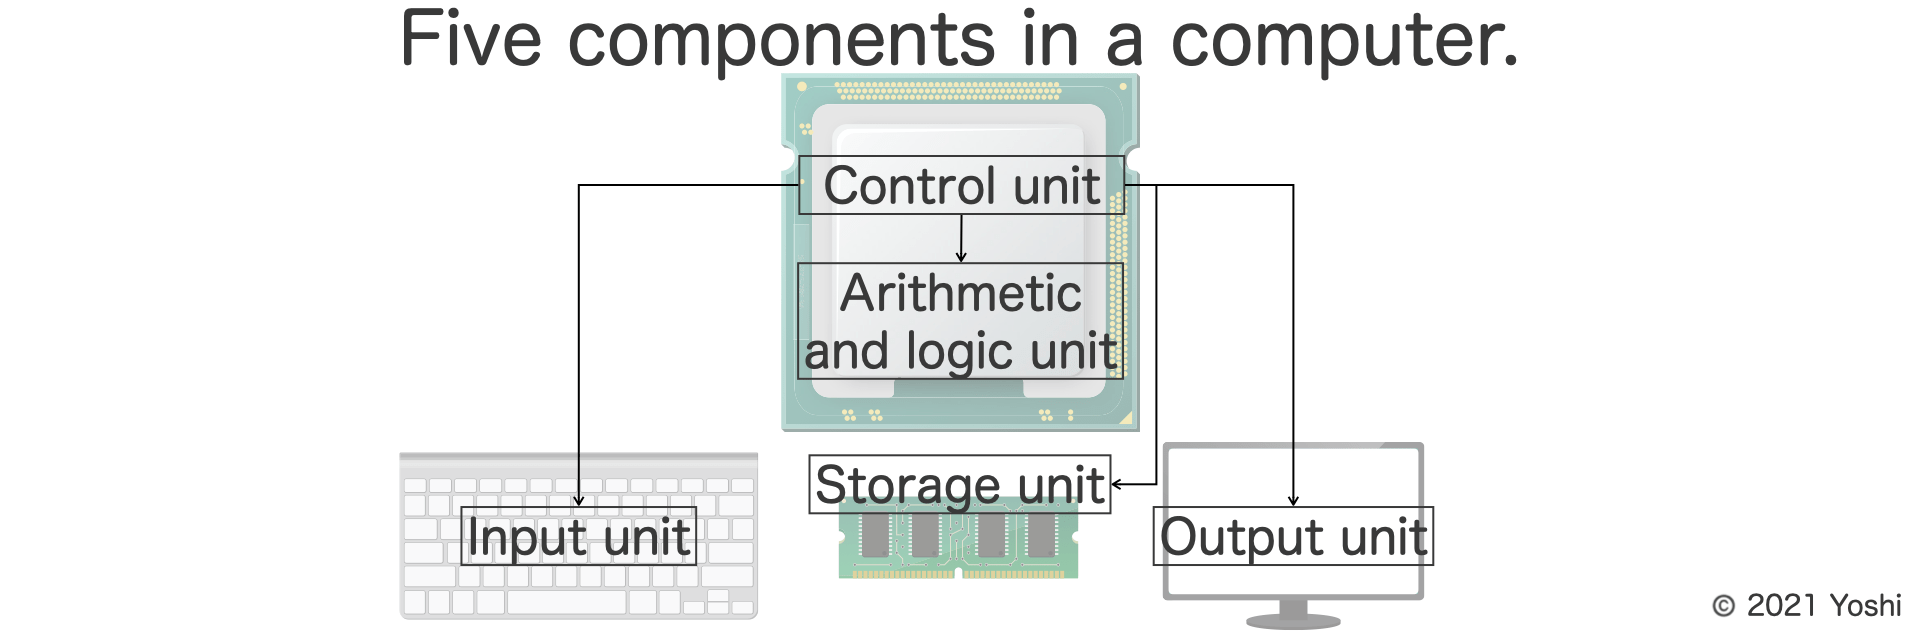 5 components/devices of a computer